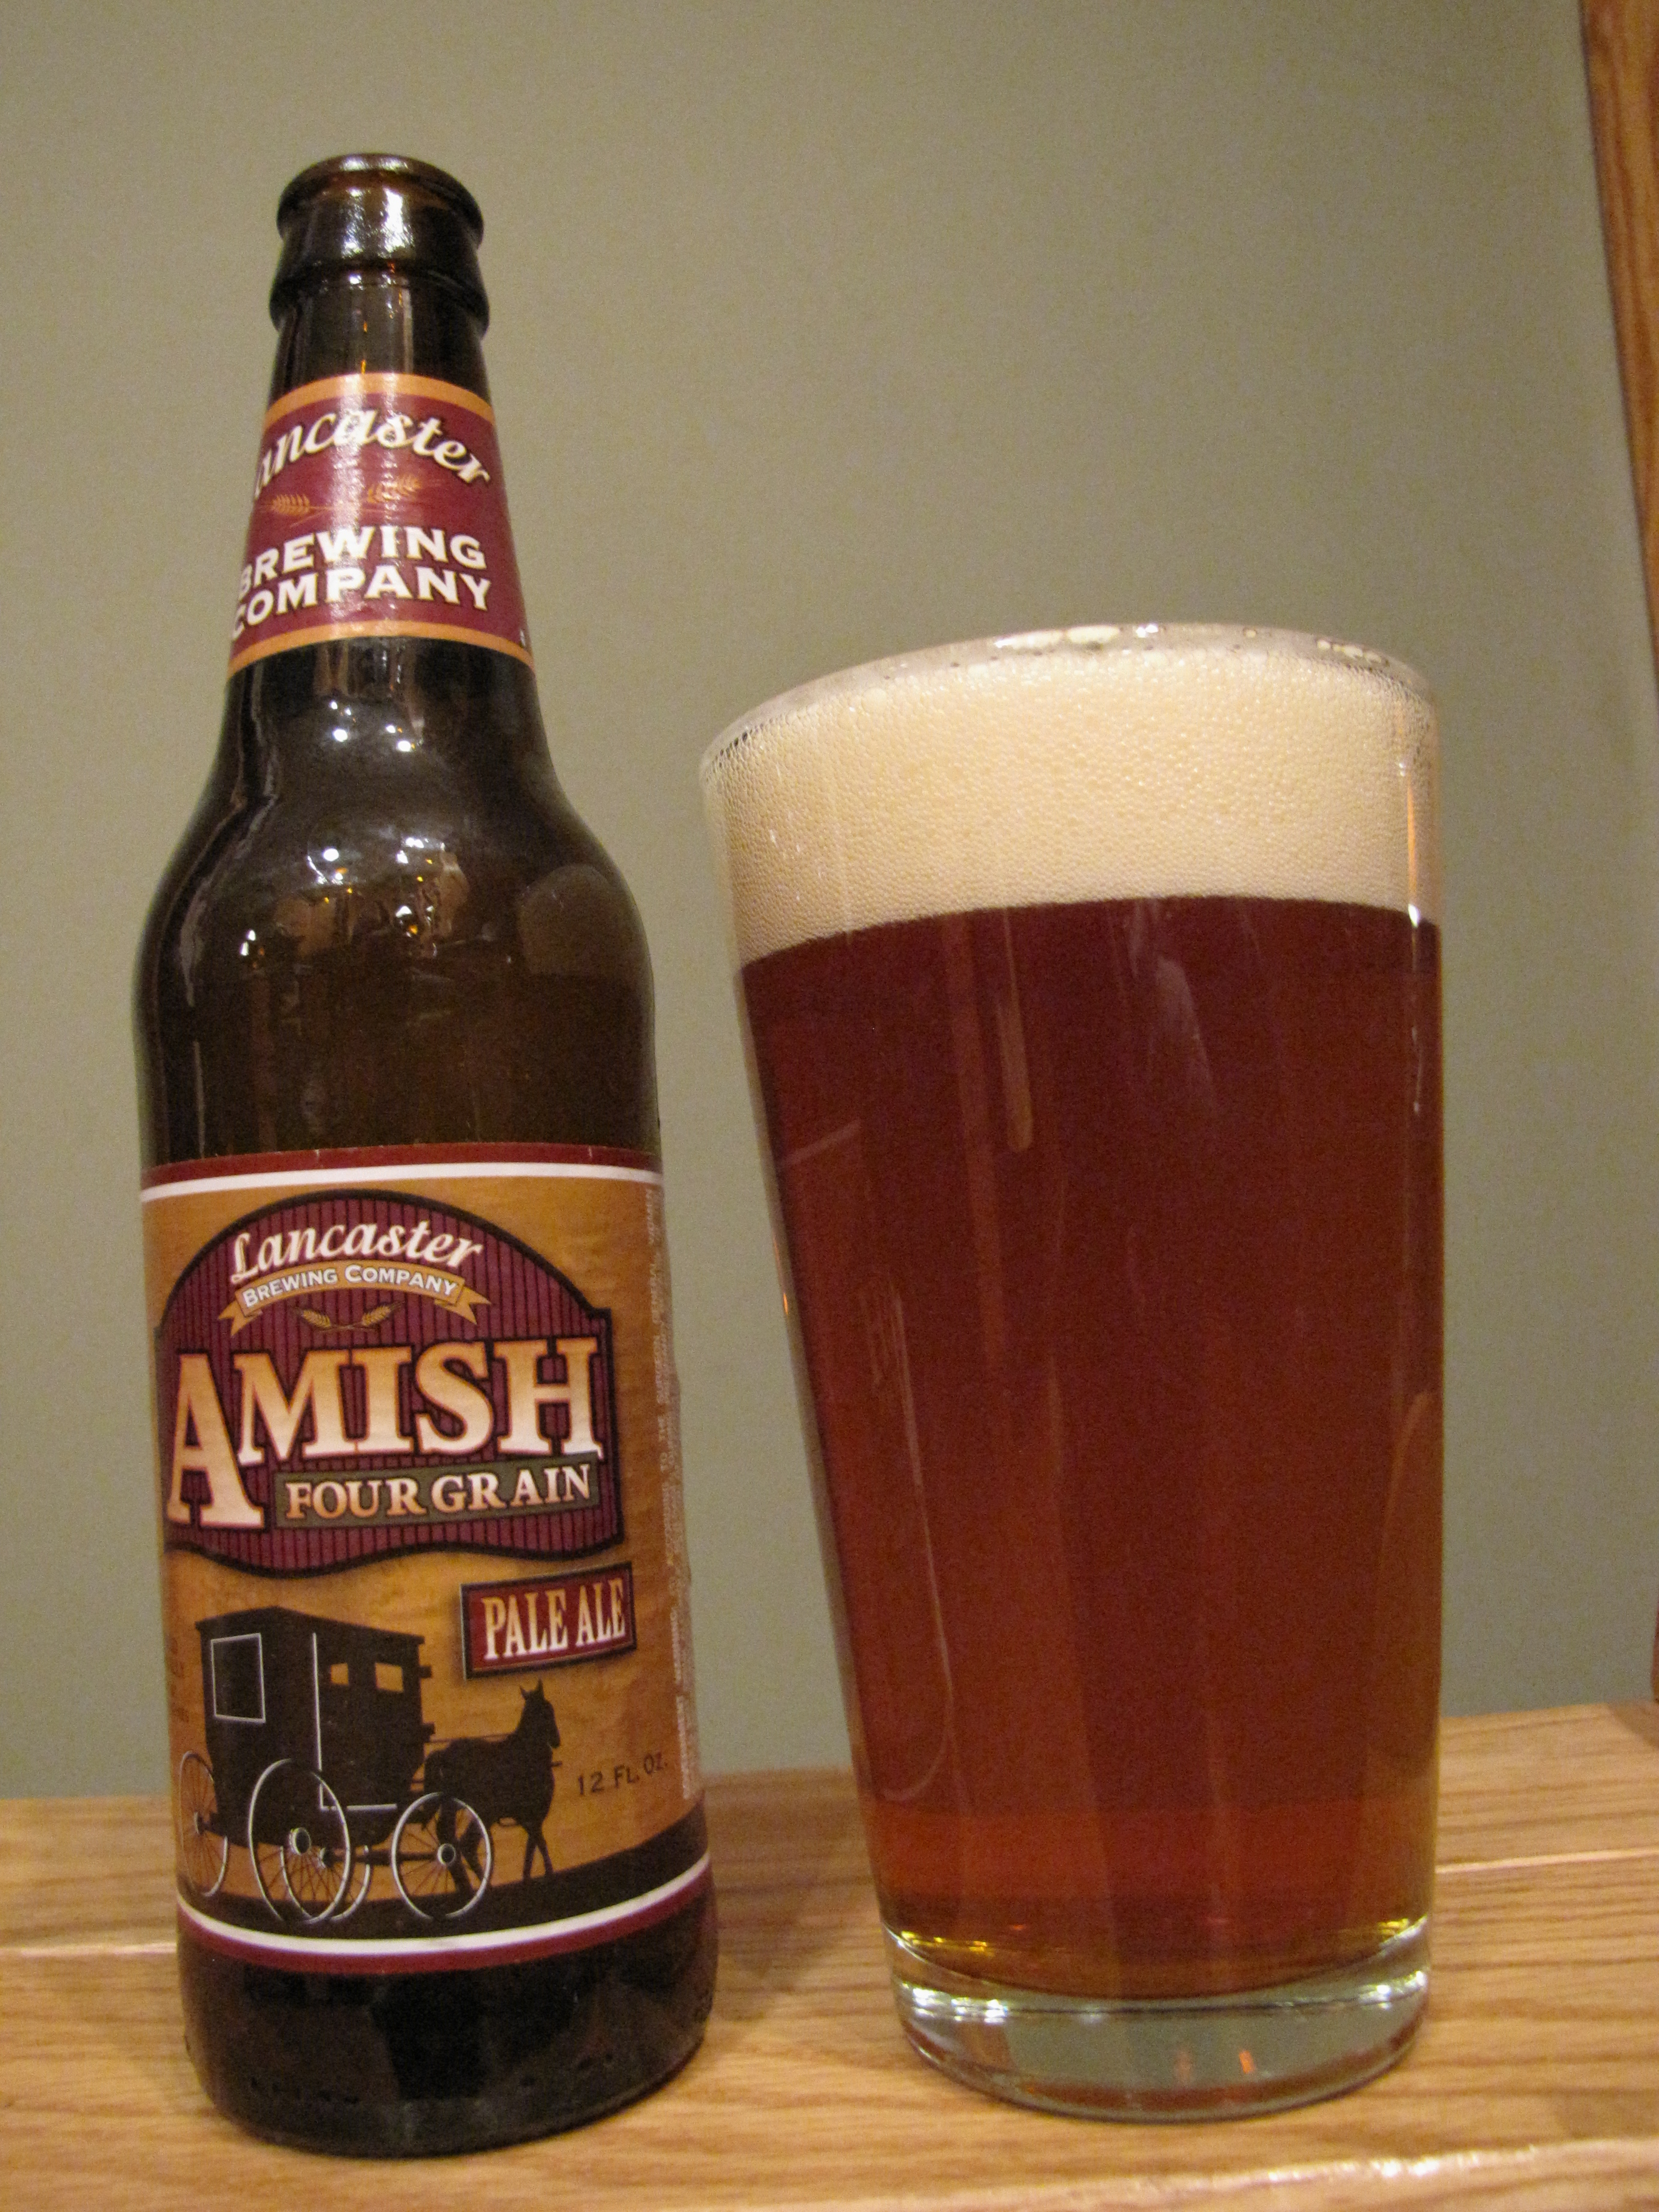 Lancaster Amish Four Grain Pale Ale